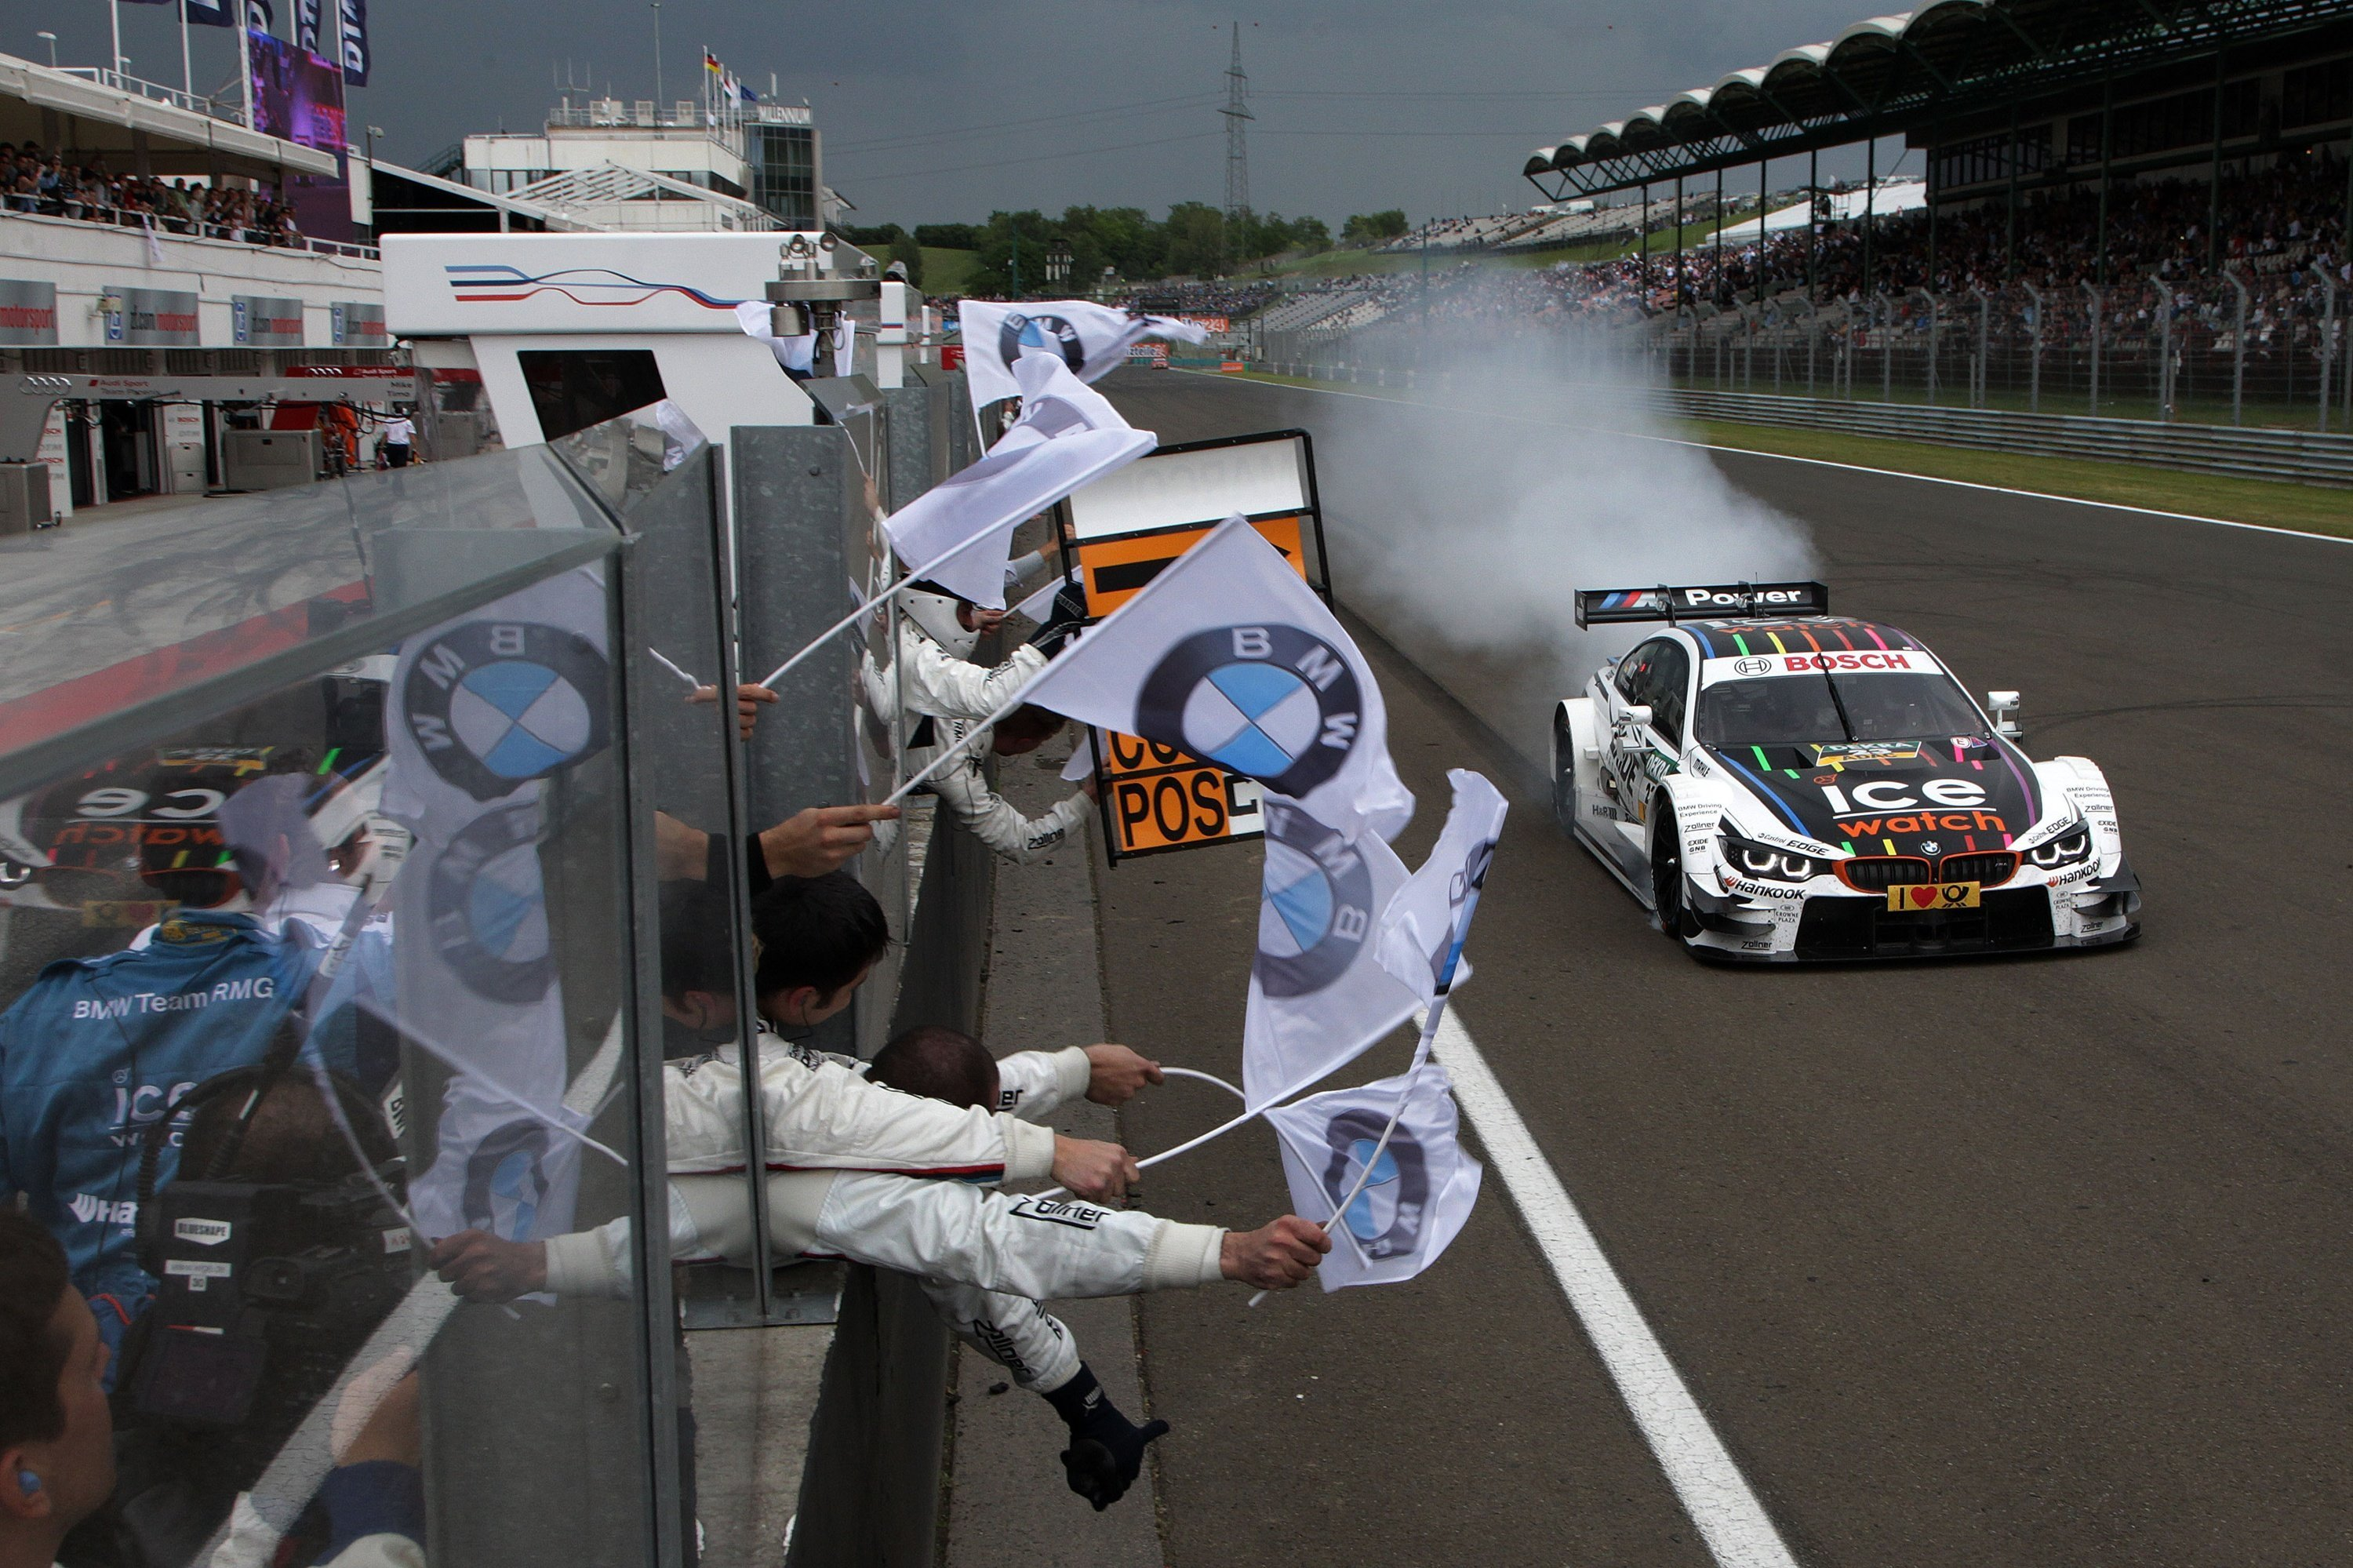 Budapest (HU) 01th June 2014. BMW Motorsport, Winner Marco Wittmann (DE) Ice-Watch BMW M4 DTM. This image is copyright free for editorial use © BMW AG (06/2014).